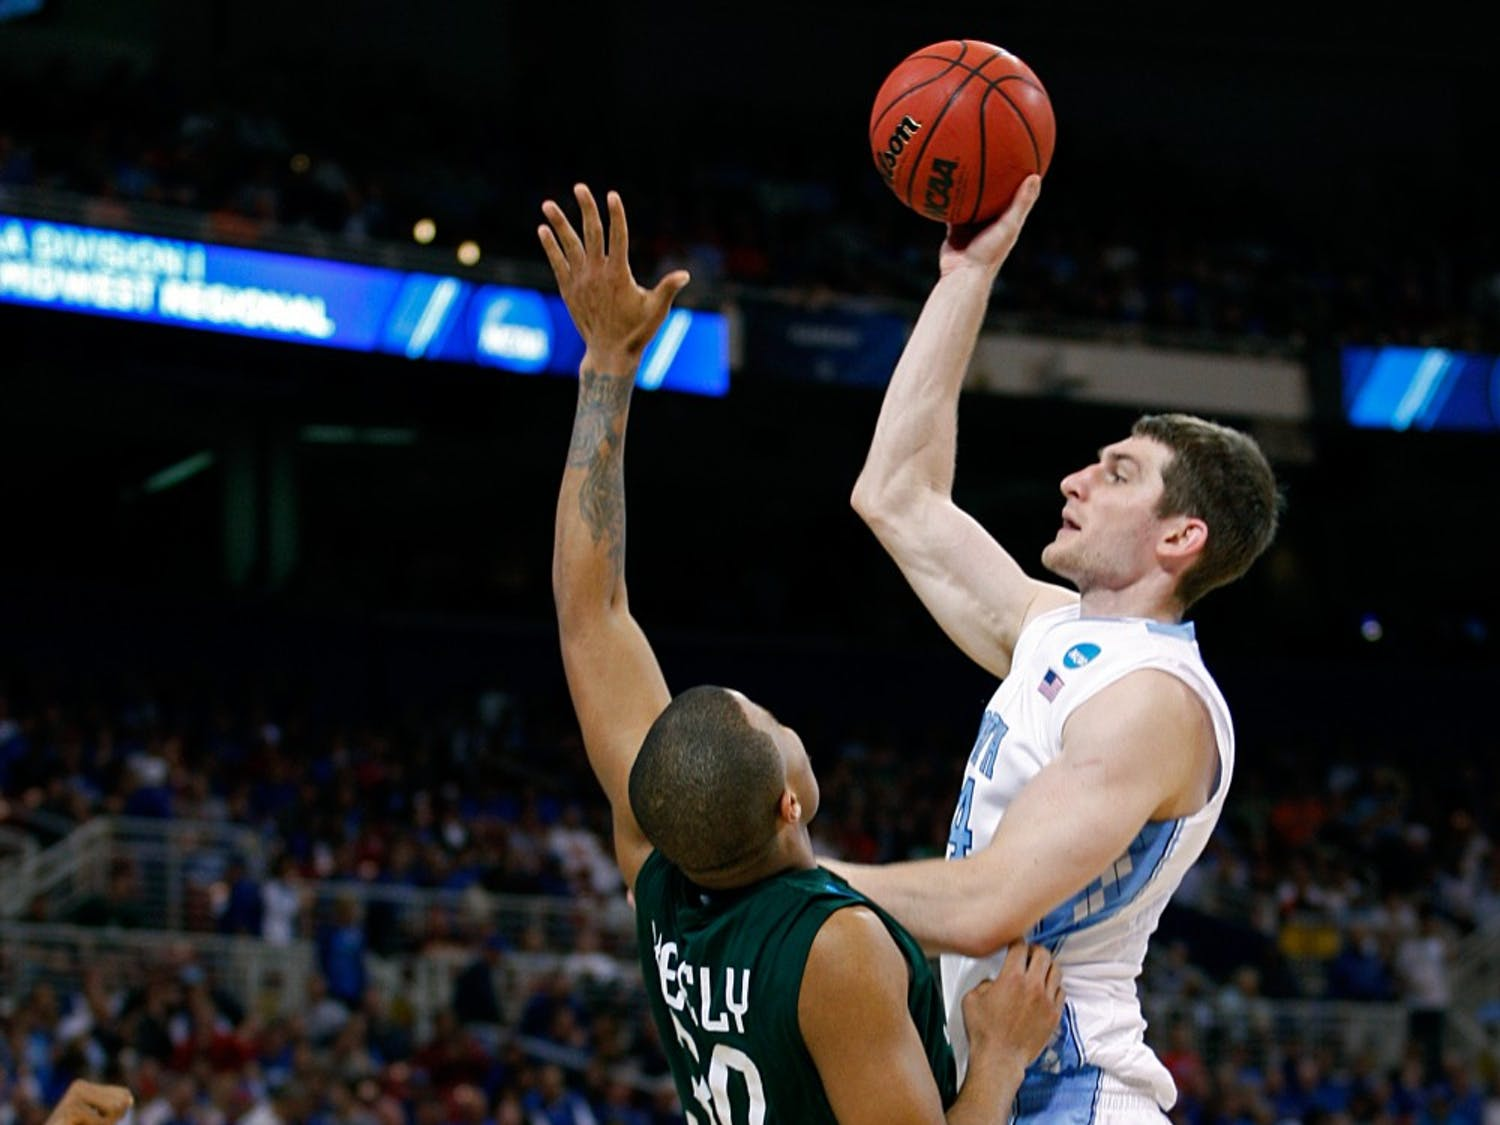 The Tar Heels lead the Ohio Bobcats 29-22 at the Half  in the Sweet 16 round of the NCAA Tournament at the Edward Jones Dome in St. Louis on Friday, March 23, 2012,